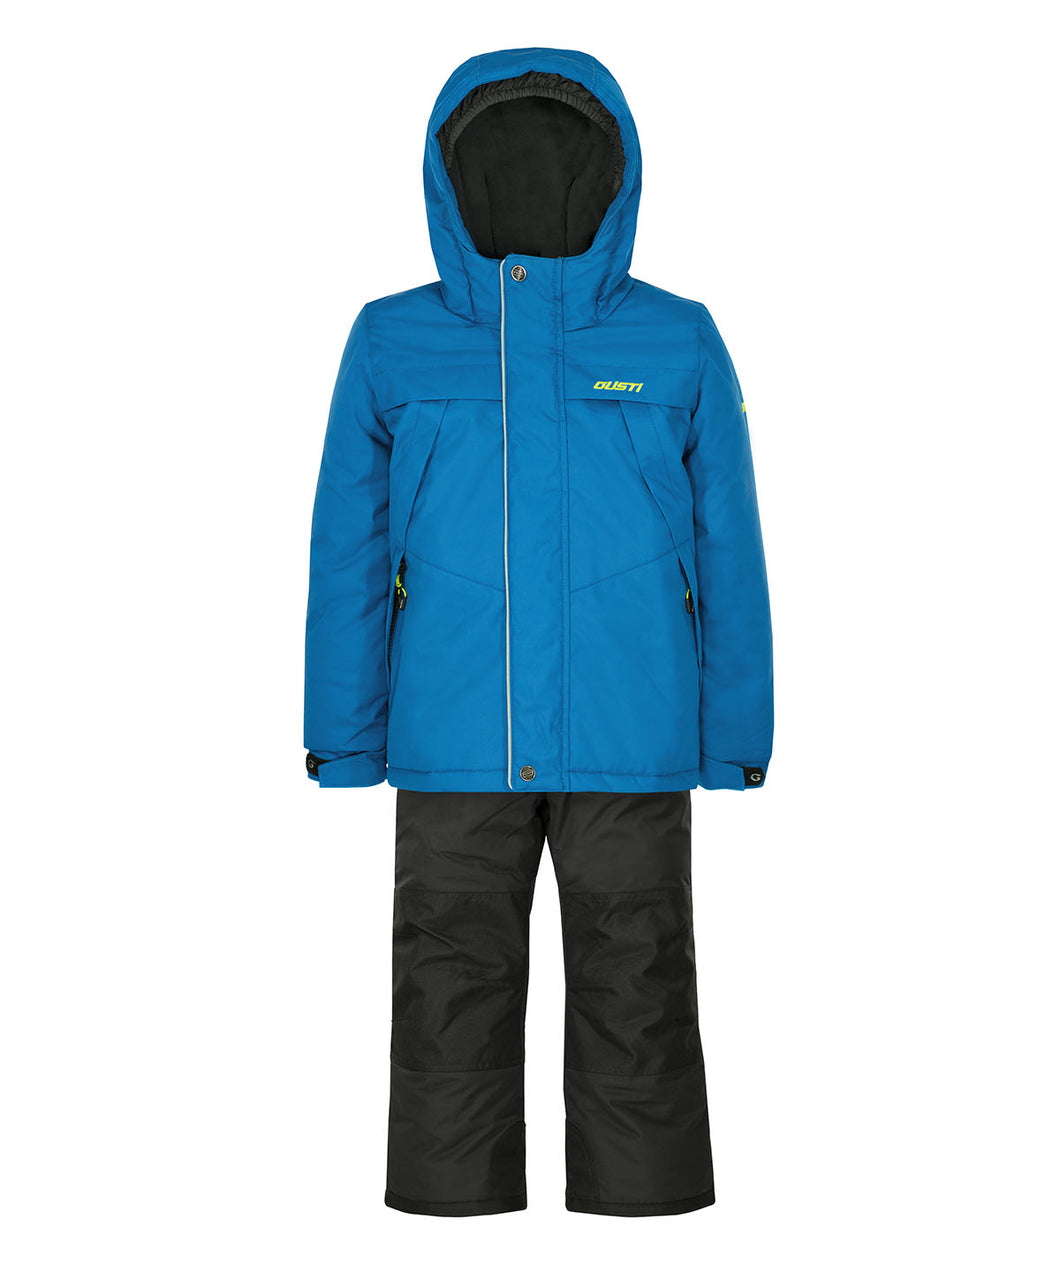 FARRELL - Indigo - Boys Jacket and Snow Pant Set